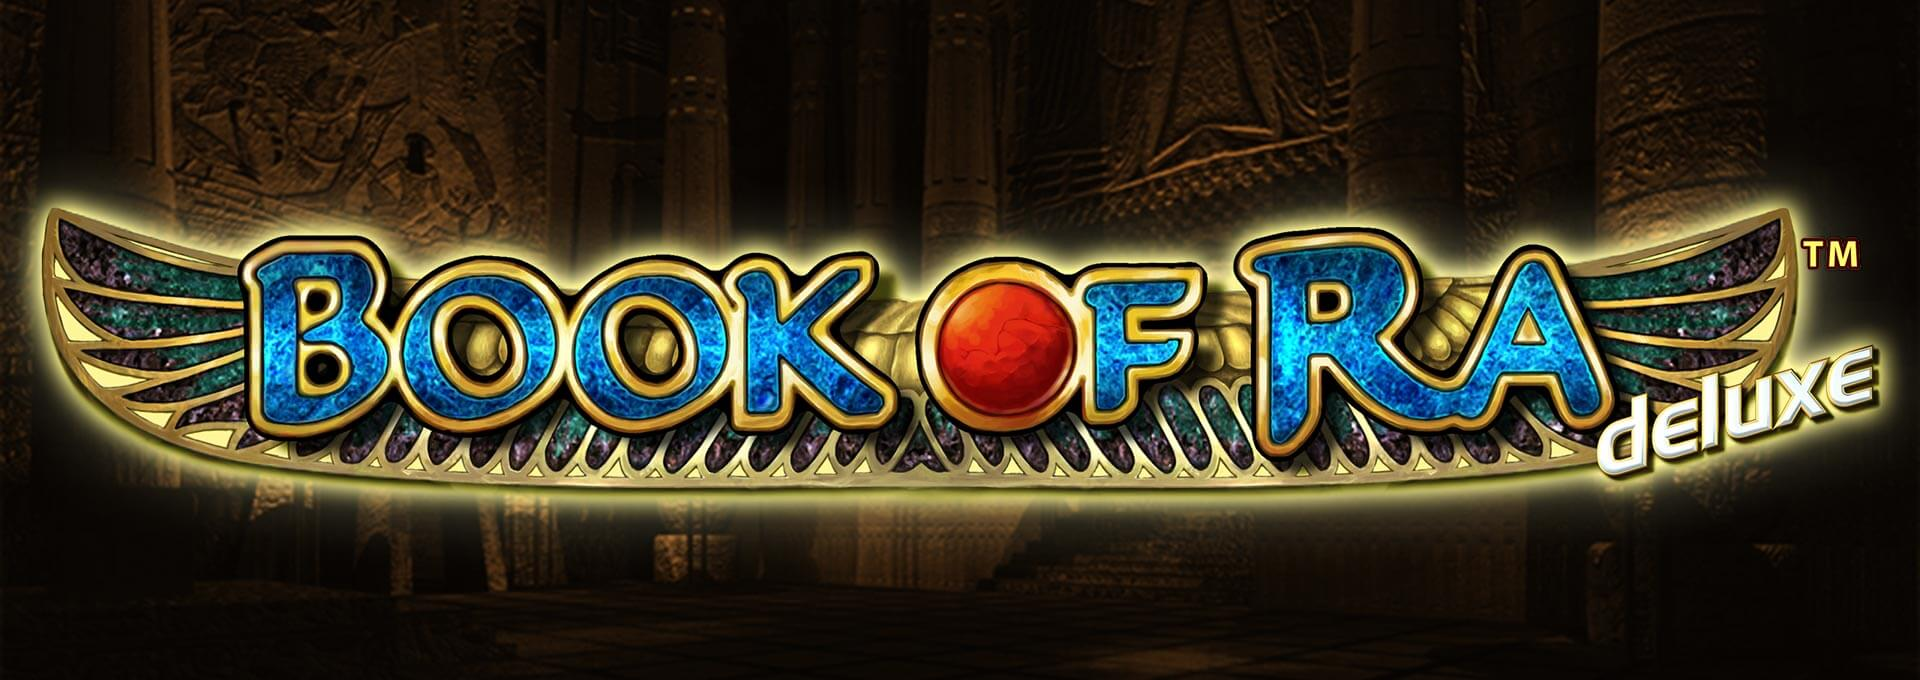 royal vegas online casino the book of ra